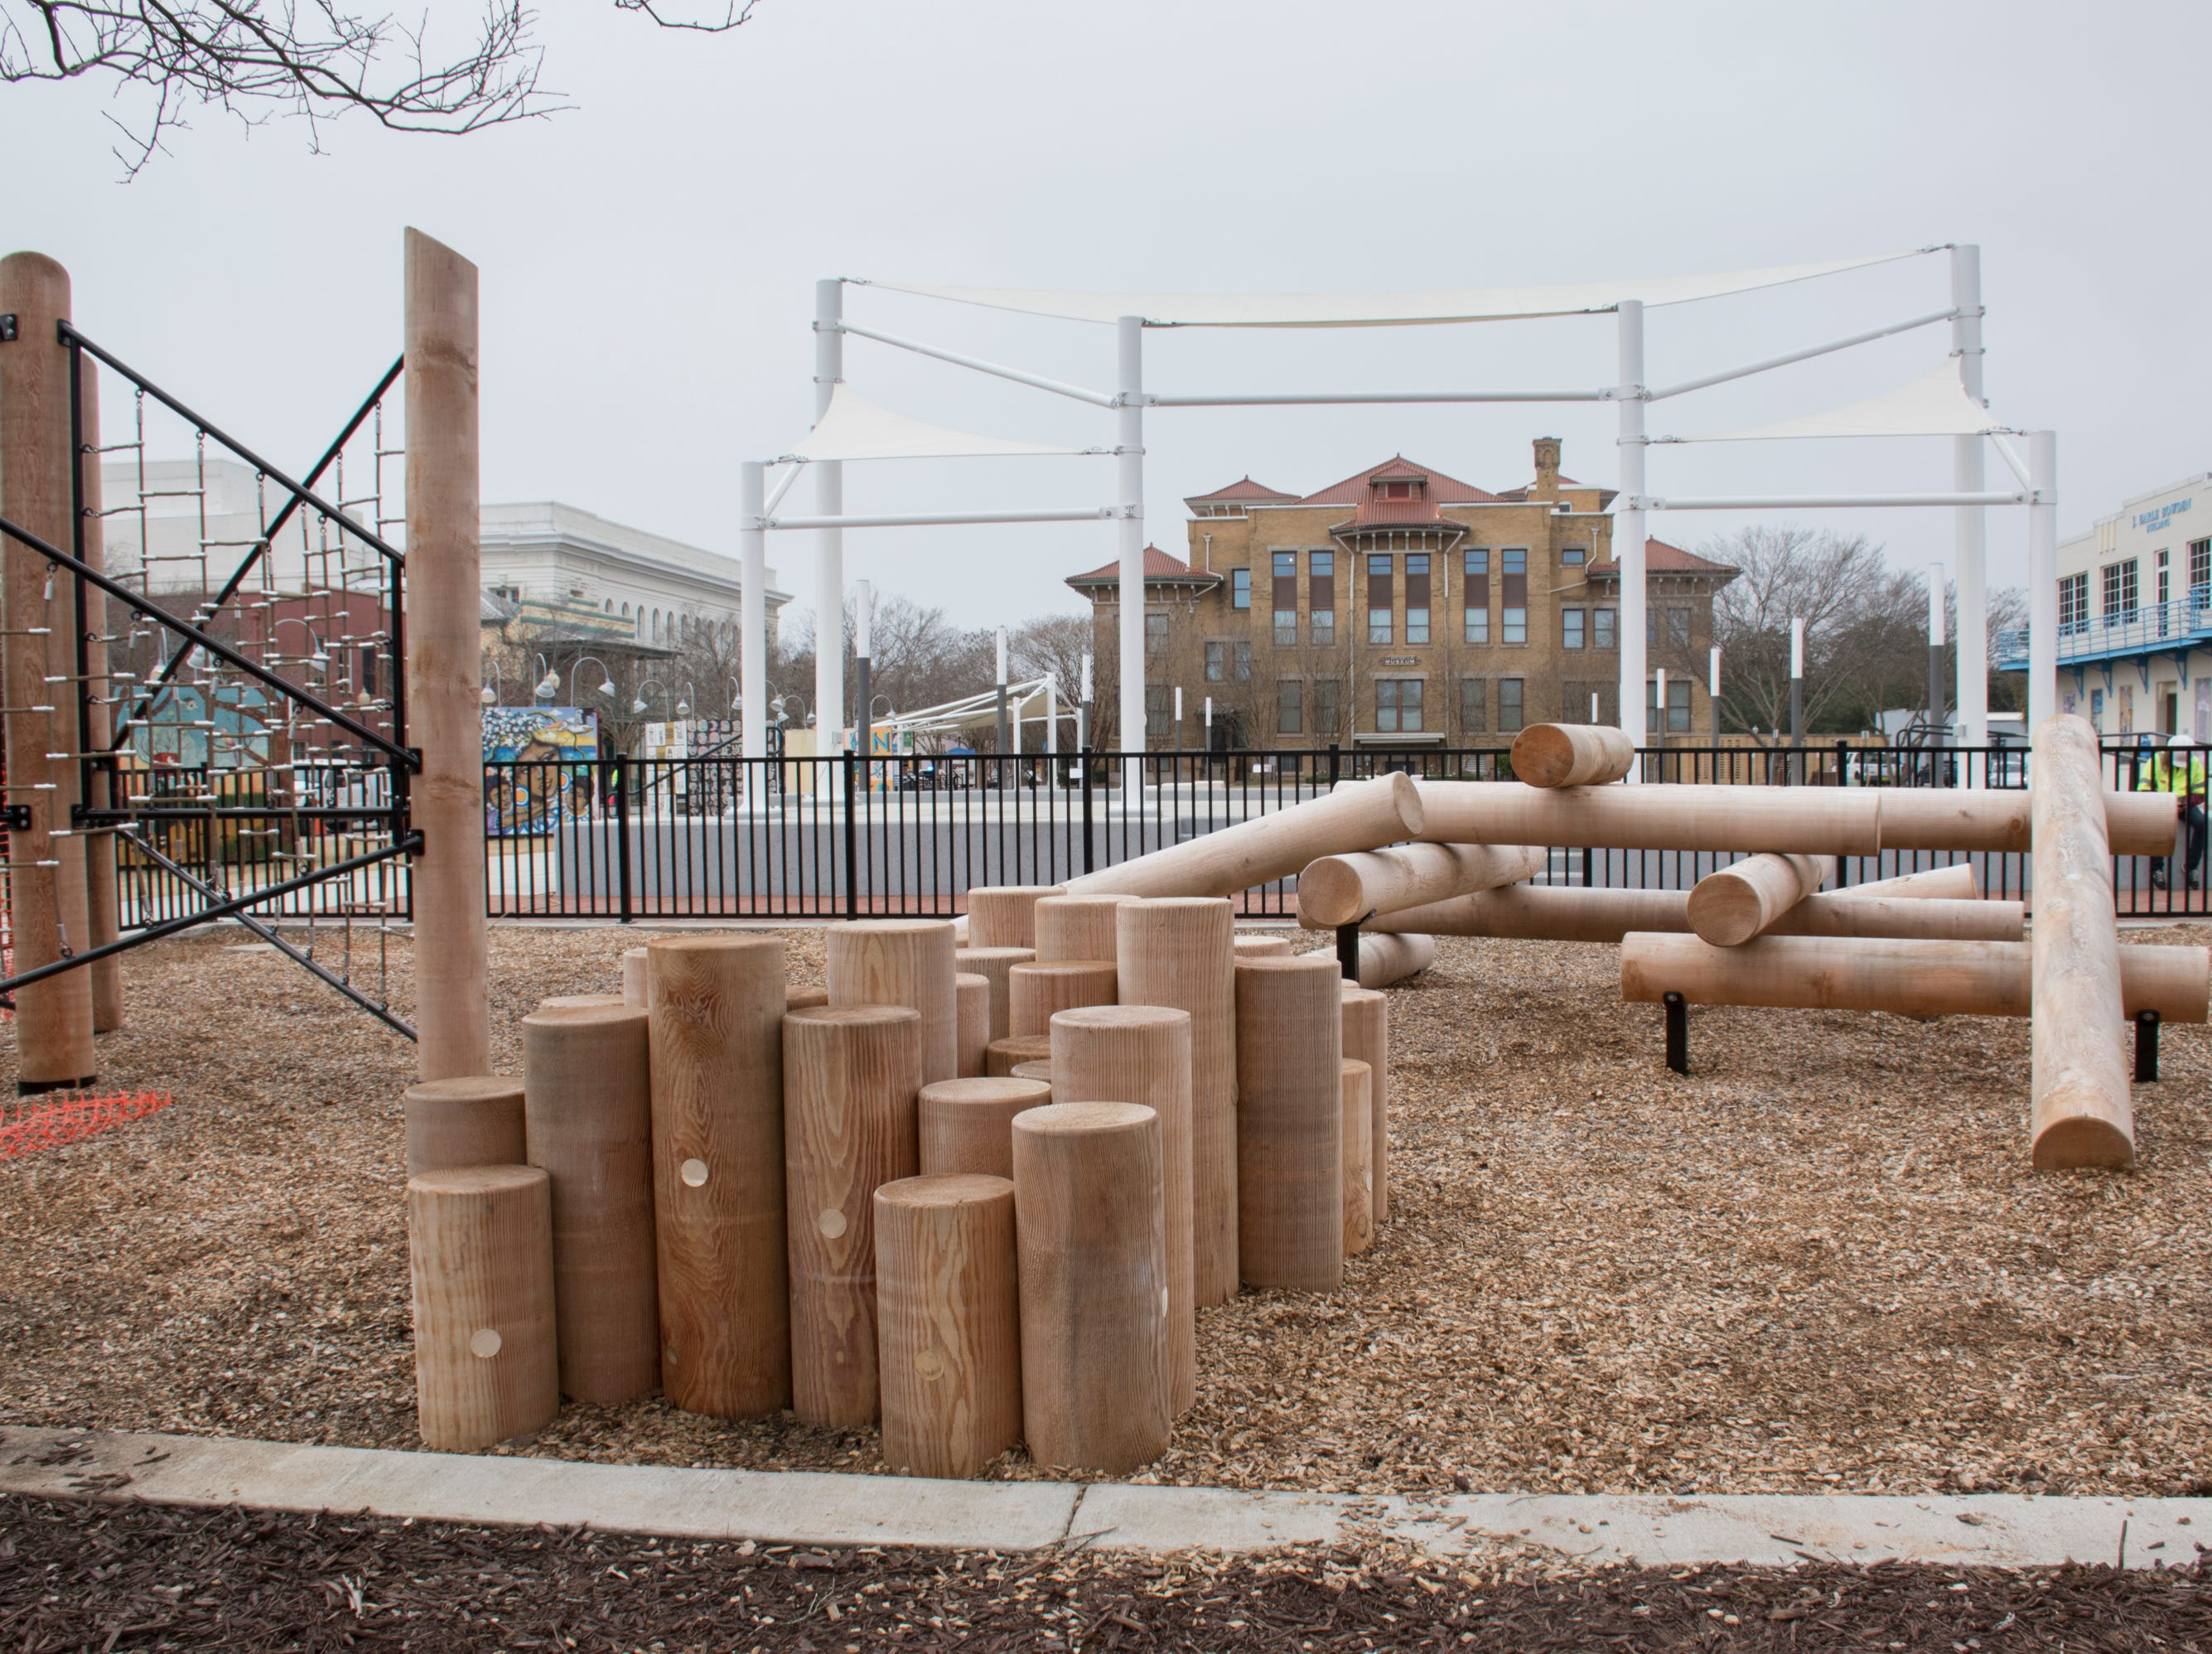 The playground at the Museum Plaza behind the T.T. Wentworth Museum in downtown Pensacola on Tuesday, February 5, 2019.